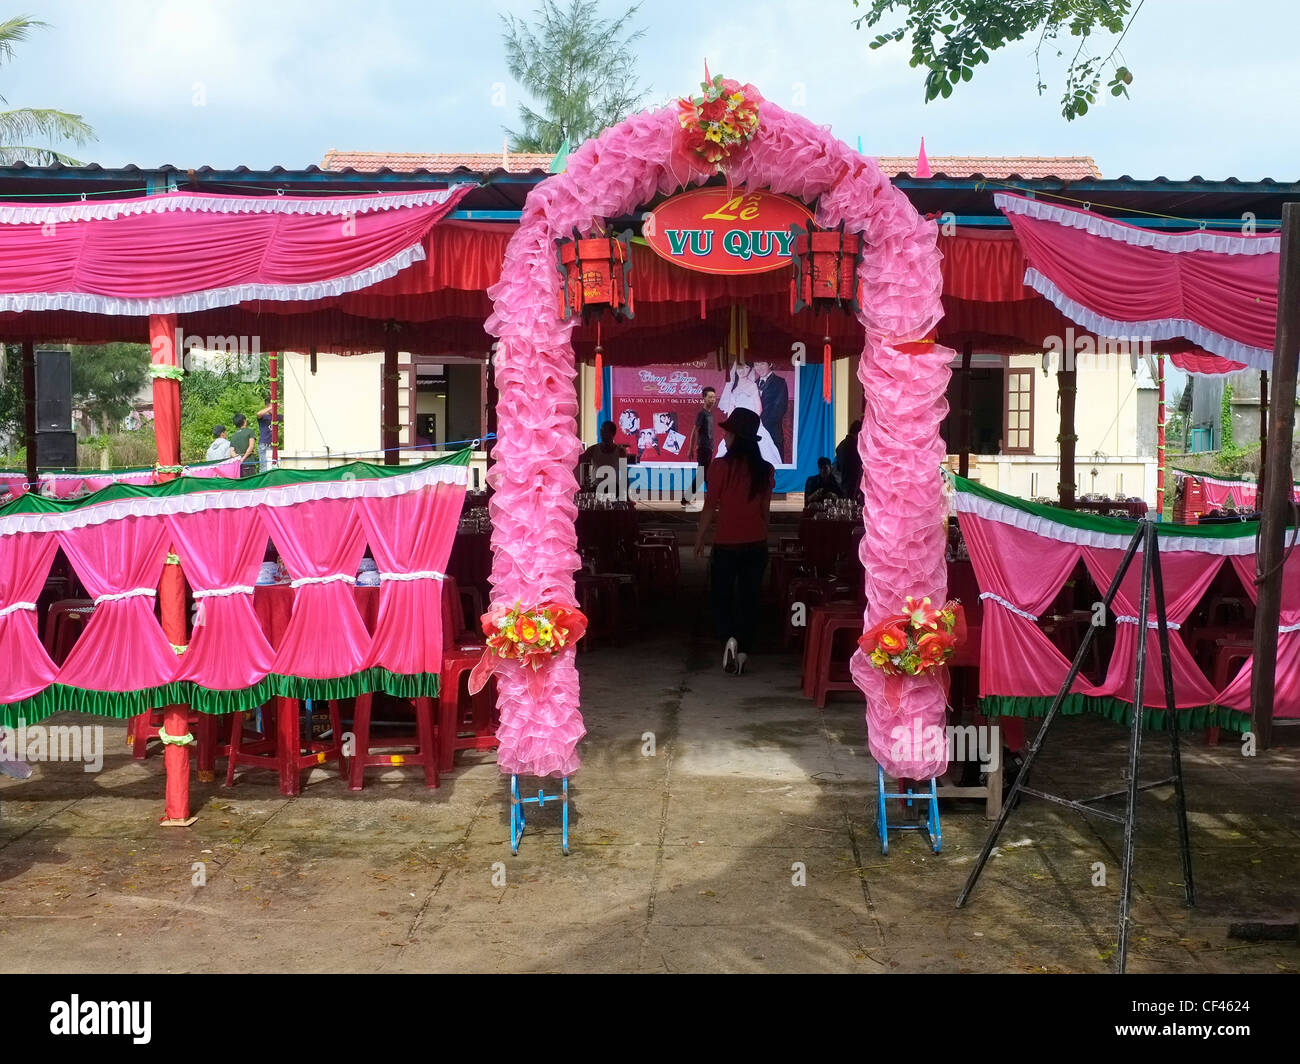 Funny gates stock photos funny gates stock images alamy le vu quy decorated wedding restaurant hoi an vietnam stock image junglespirit Gallery